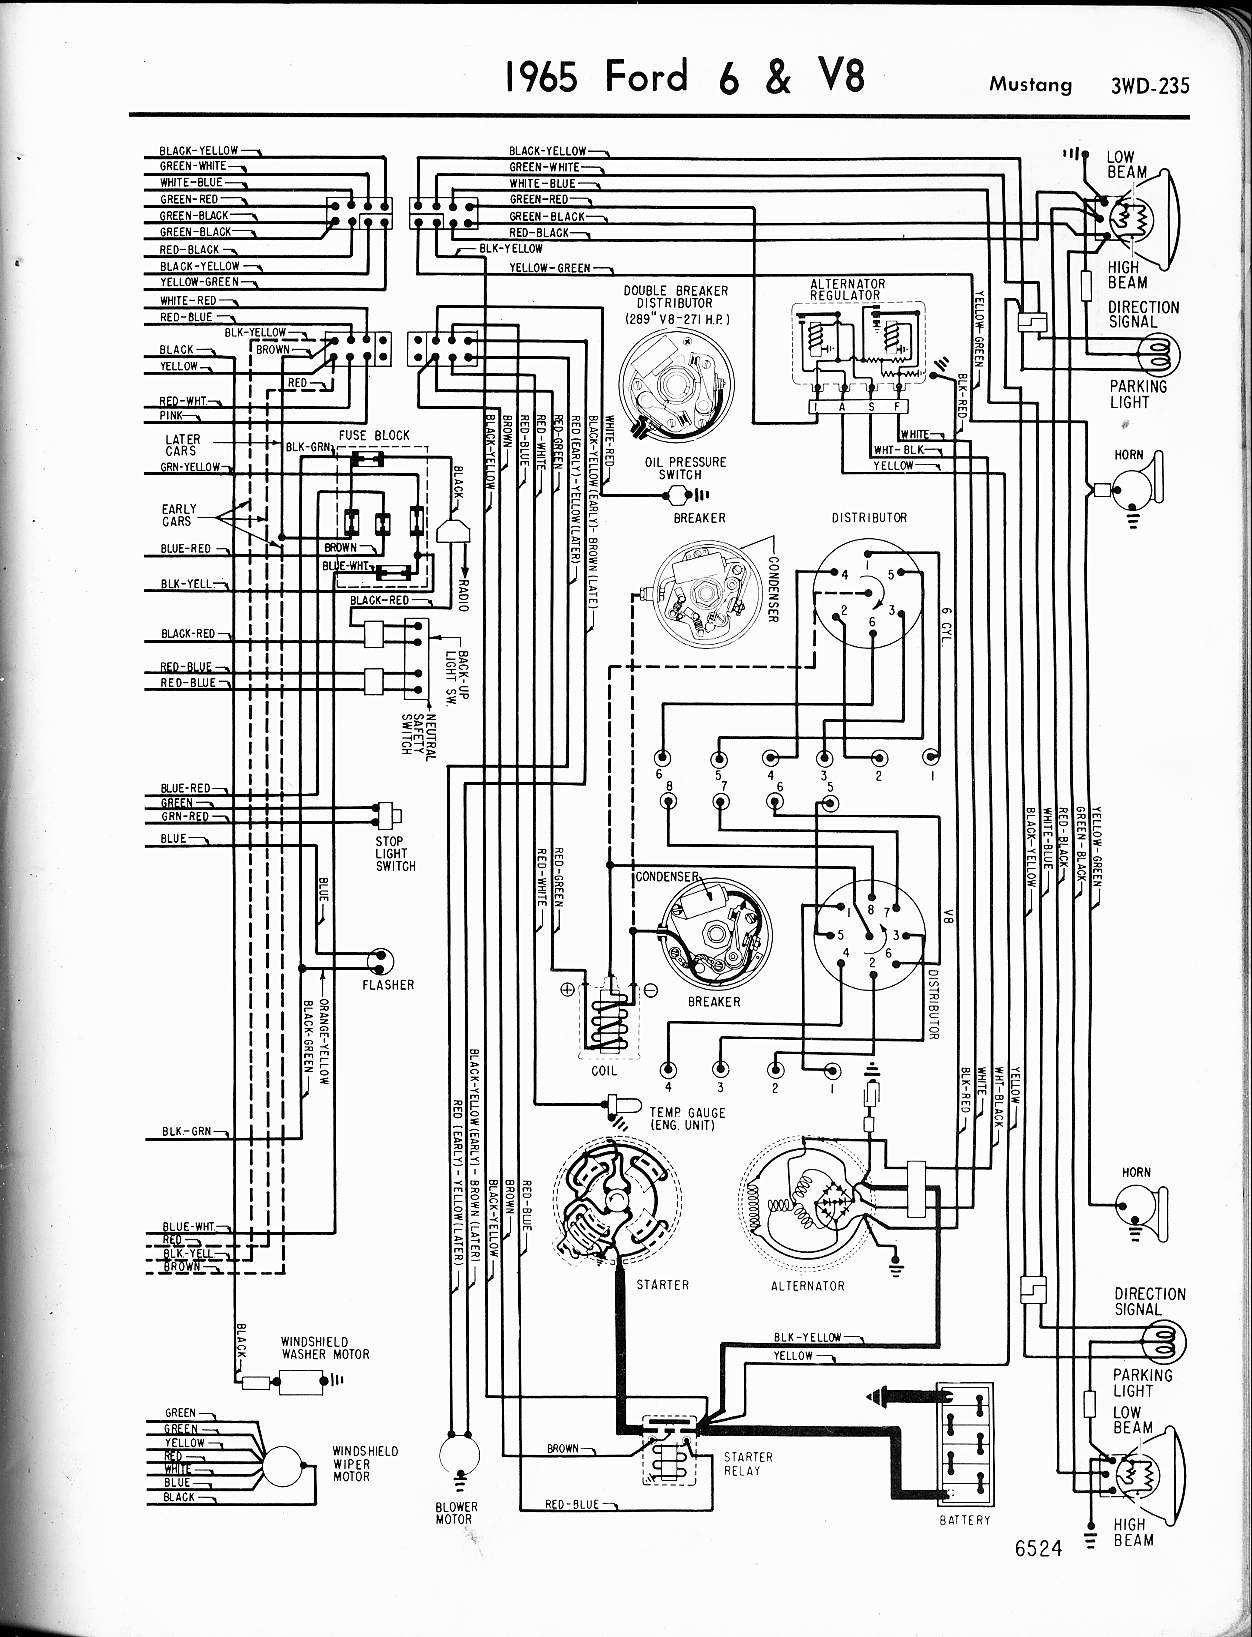 1965_mustang_wiring_2 69 mustang wiring diagram 1969 ford f100 wiring diagram \u2022 wiring 1965 mustang turn signal wiring diagram at bakdesigns.co